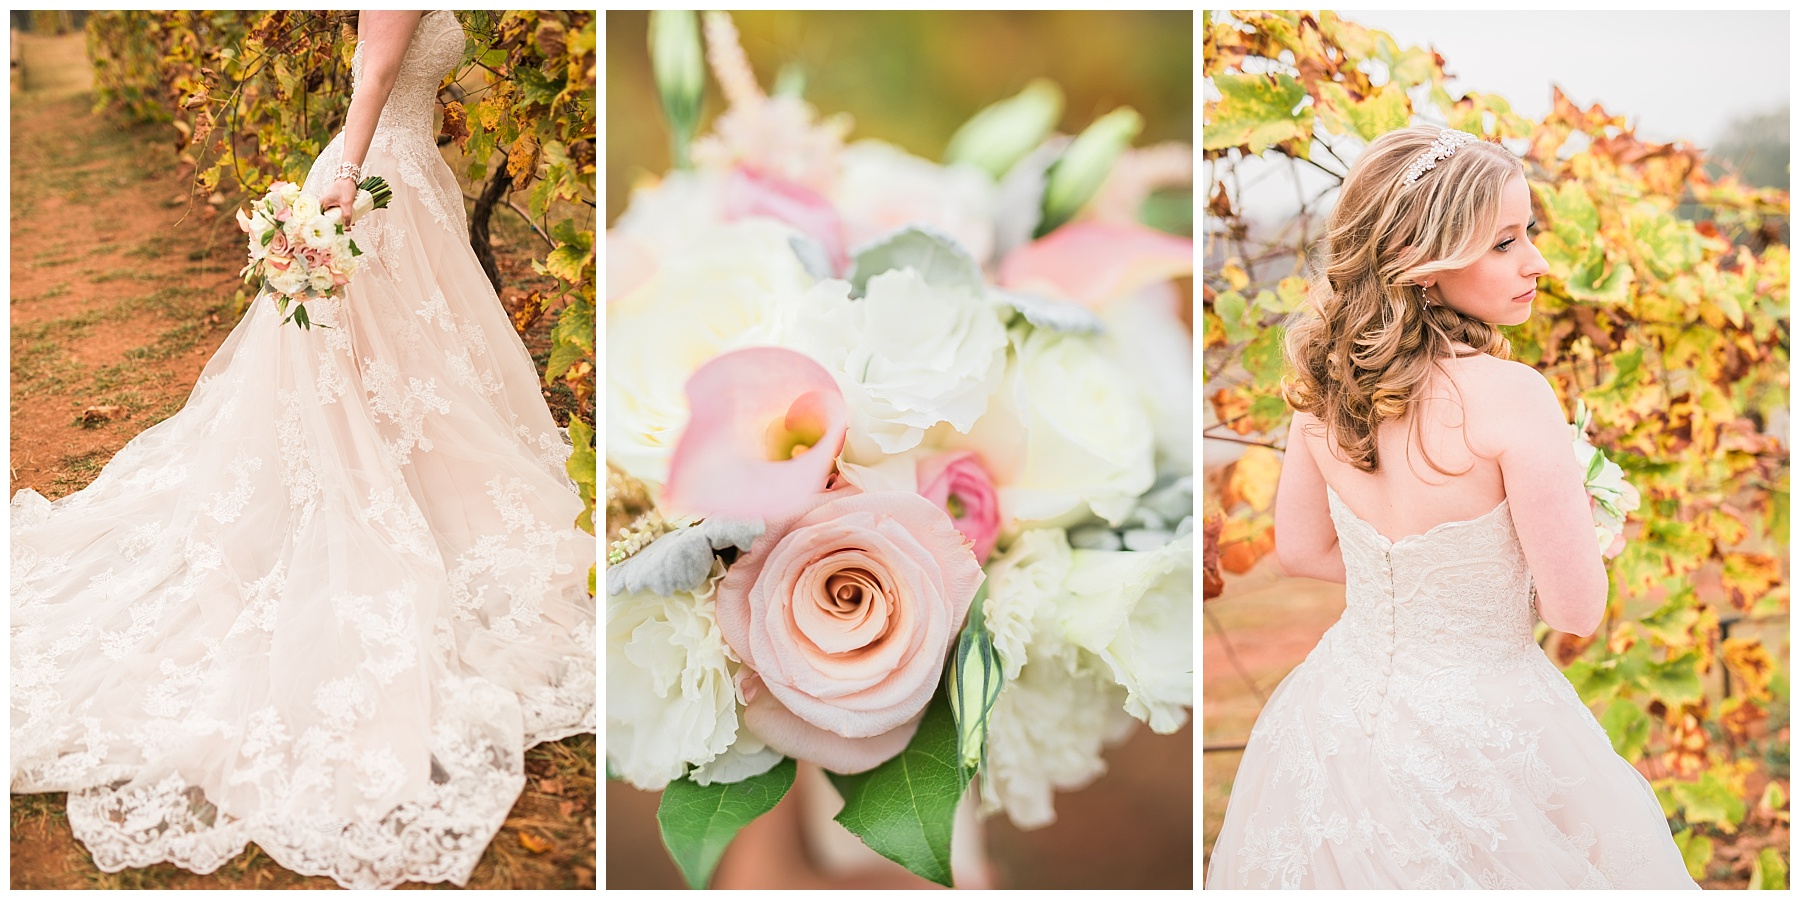 details details details. and oh, those flowers!!!